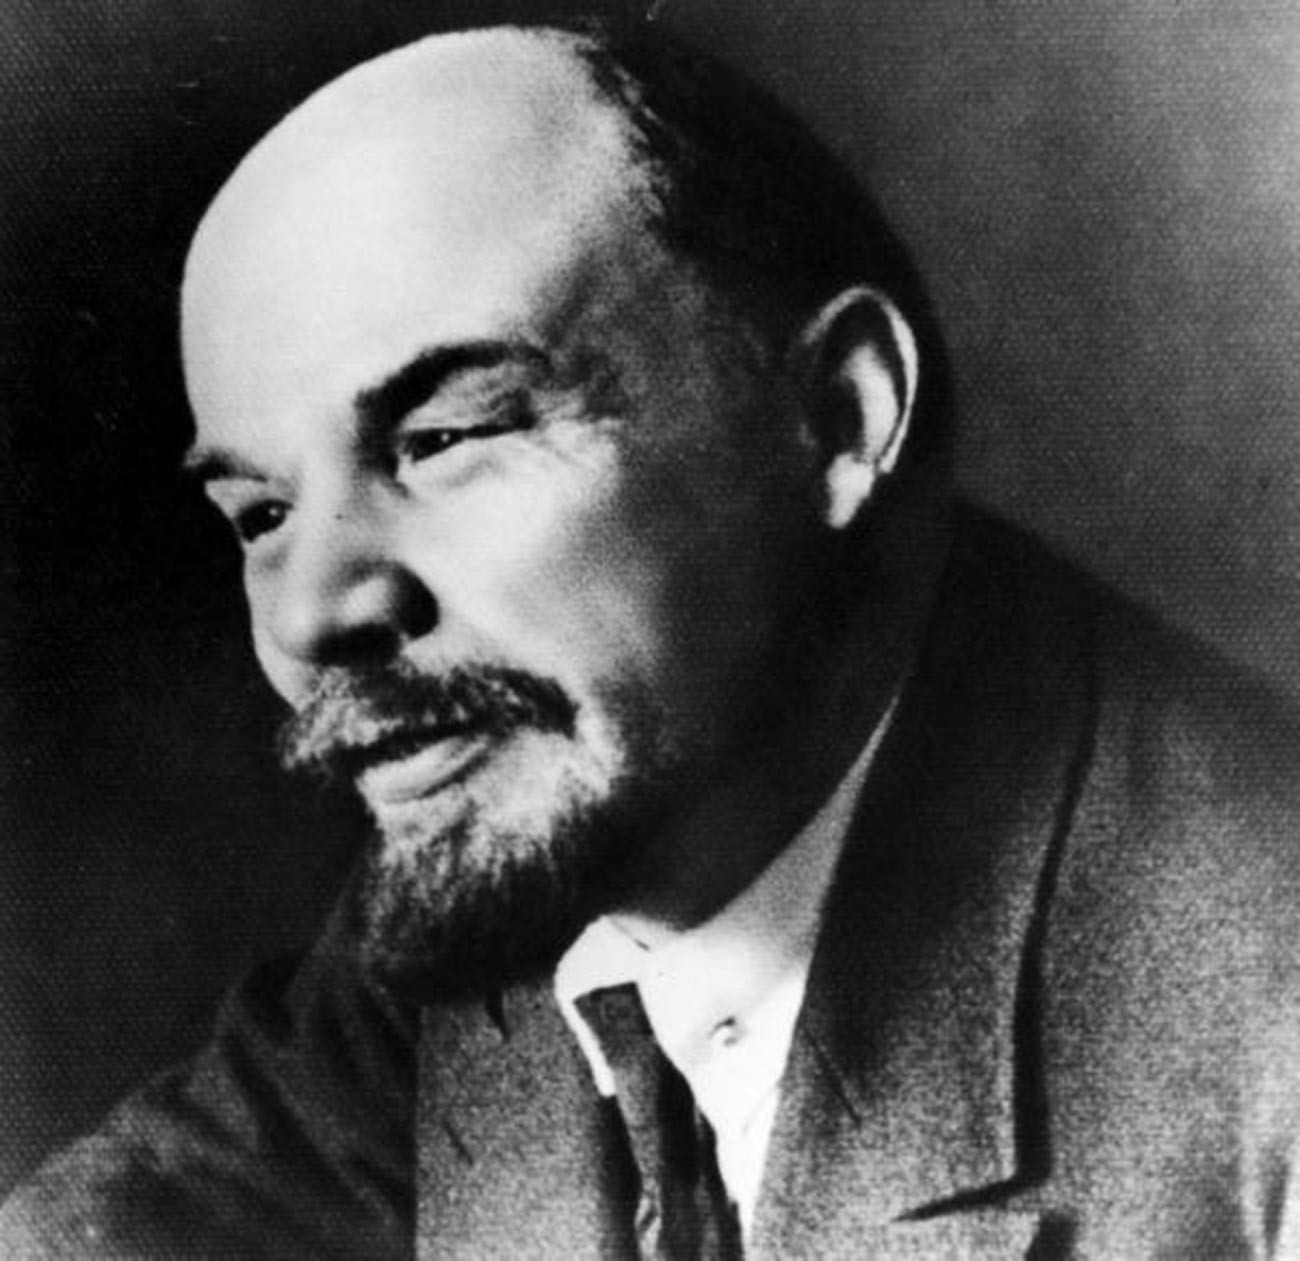 Vladimir Lenin as the first Chairman of the Council of People's Commissars